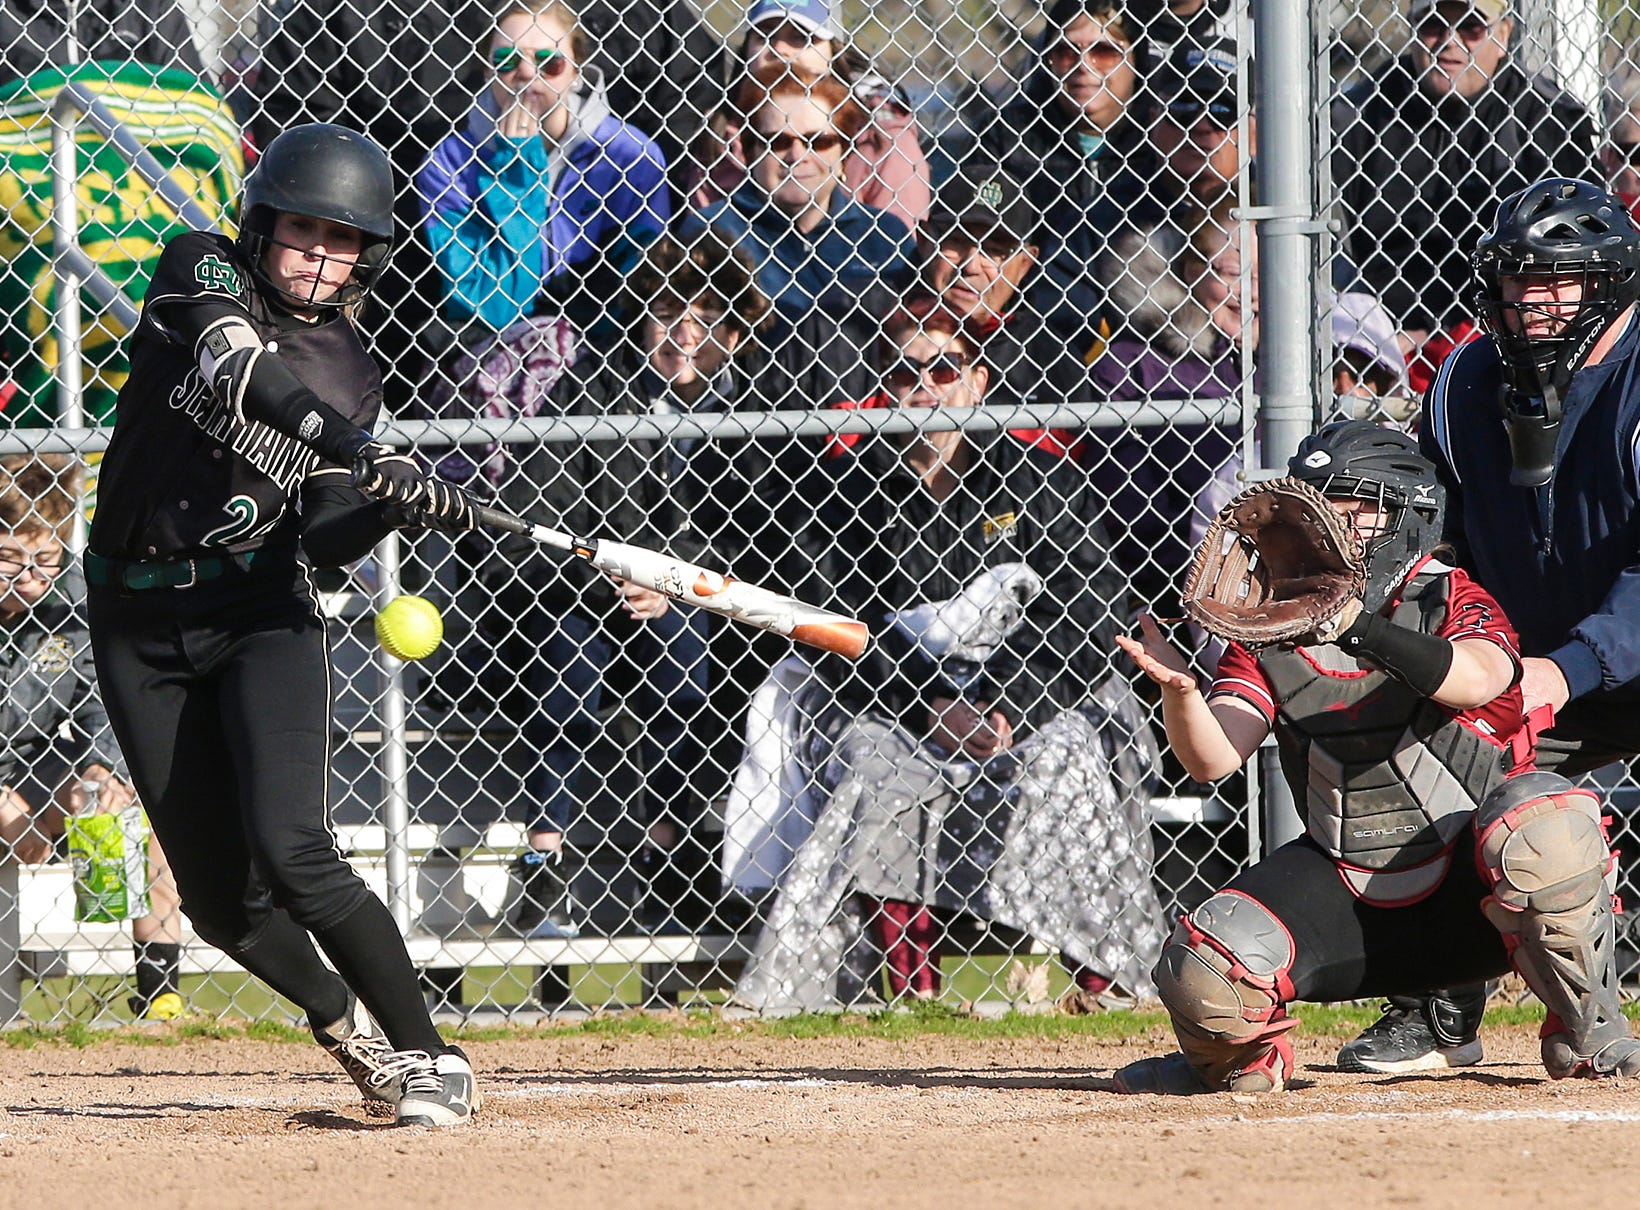 Oshkosh North High School softball's Emma Leib swings at a pitch against Fond du Lac High School during their game Friday, April 26, 2019 in Fond du Lac, Wis. Doug Raflik/USA TODAY NETWORK-Wisconsin